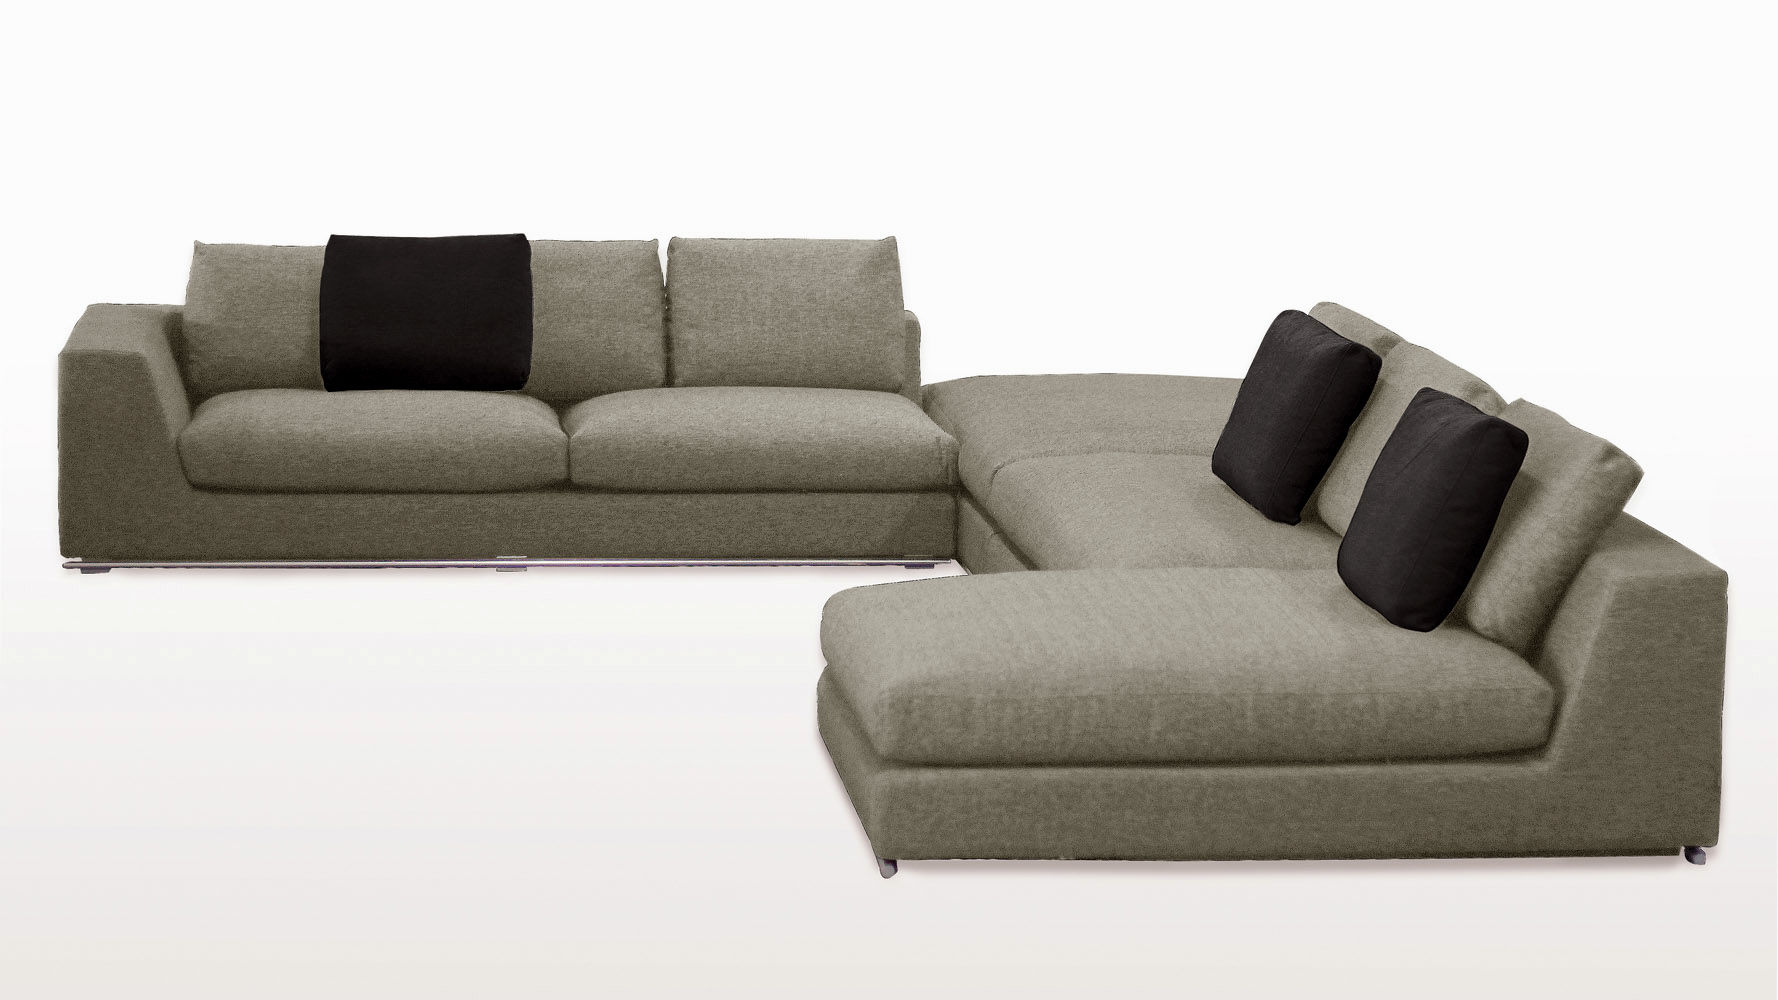 cute grey microfiber sectional sofa ideas-Inspirational Grey Microfiber Sectional sofa Picture